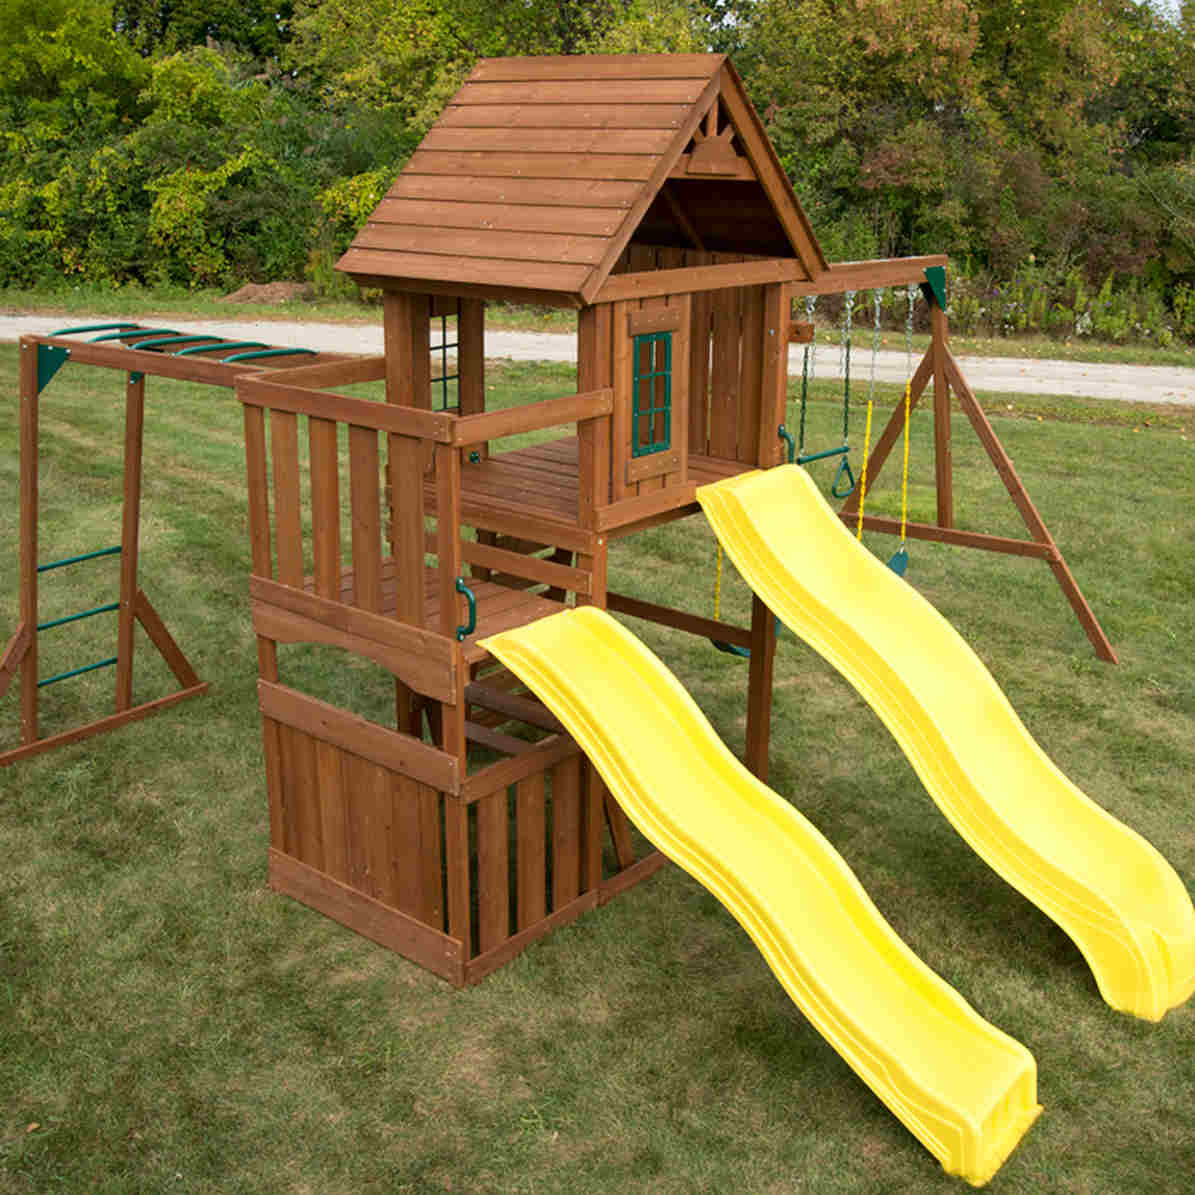 Timberview Complete Swing Set (WS-8356) Aerial View